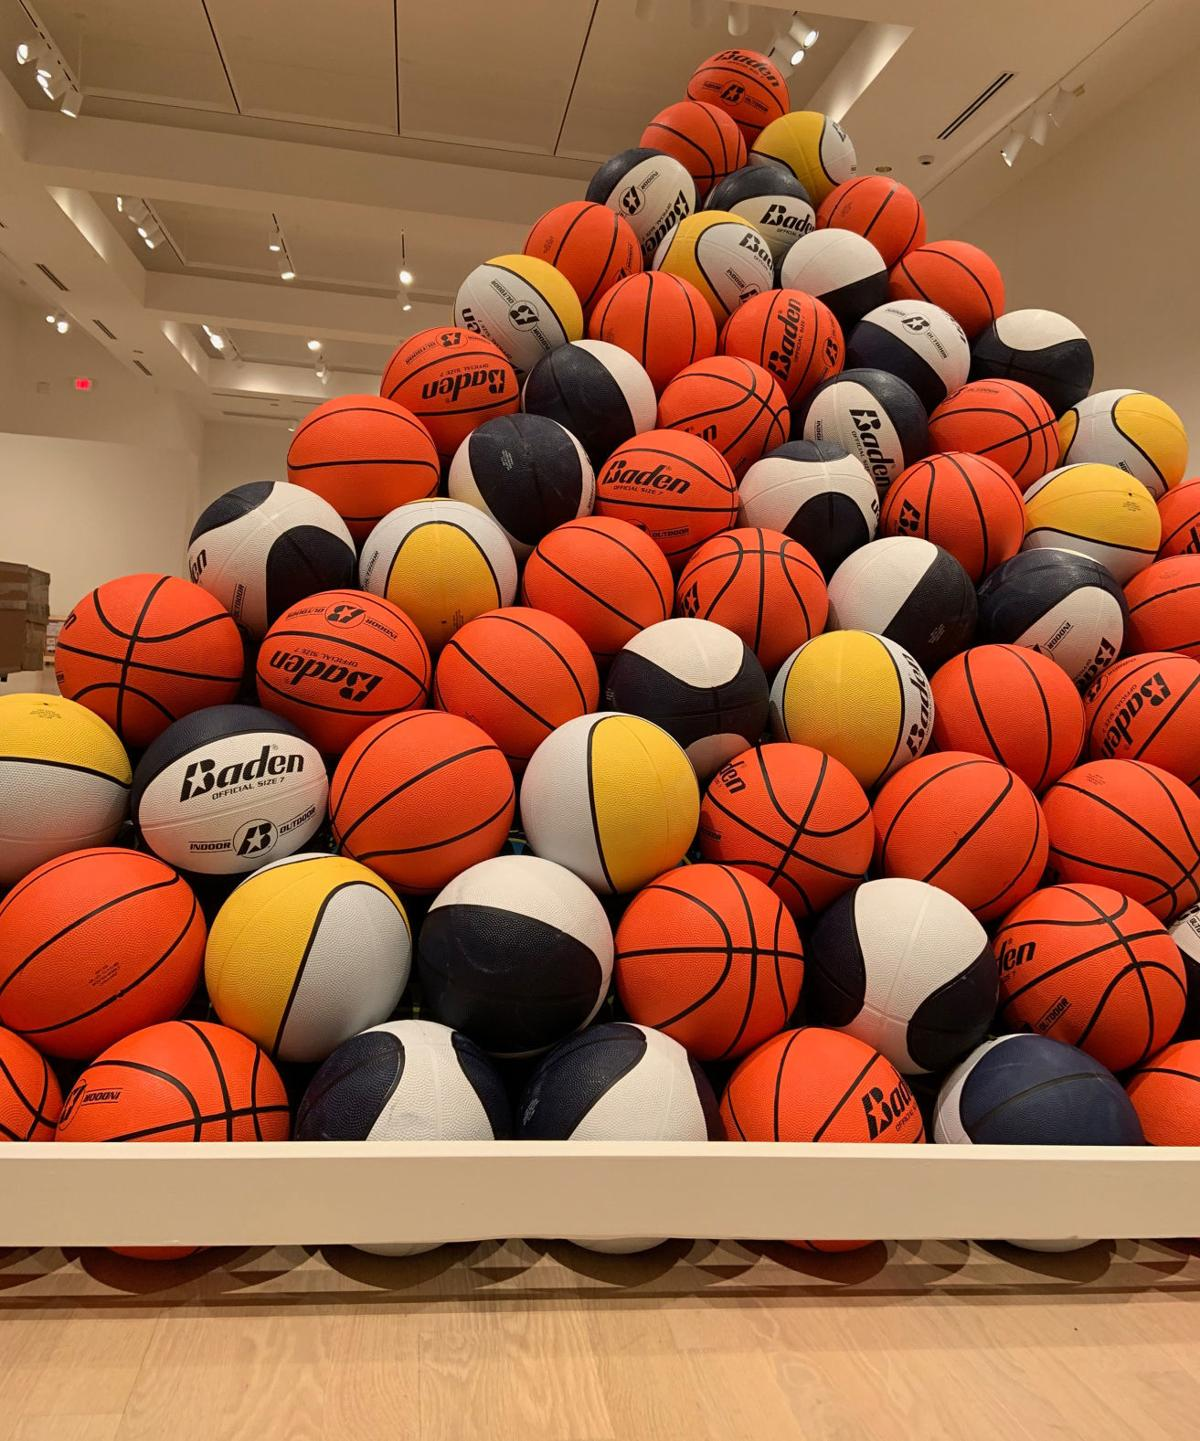 Weatherspoon Exhibit Showcases The Art Of Basketball Sport Journalnow Com